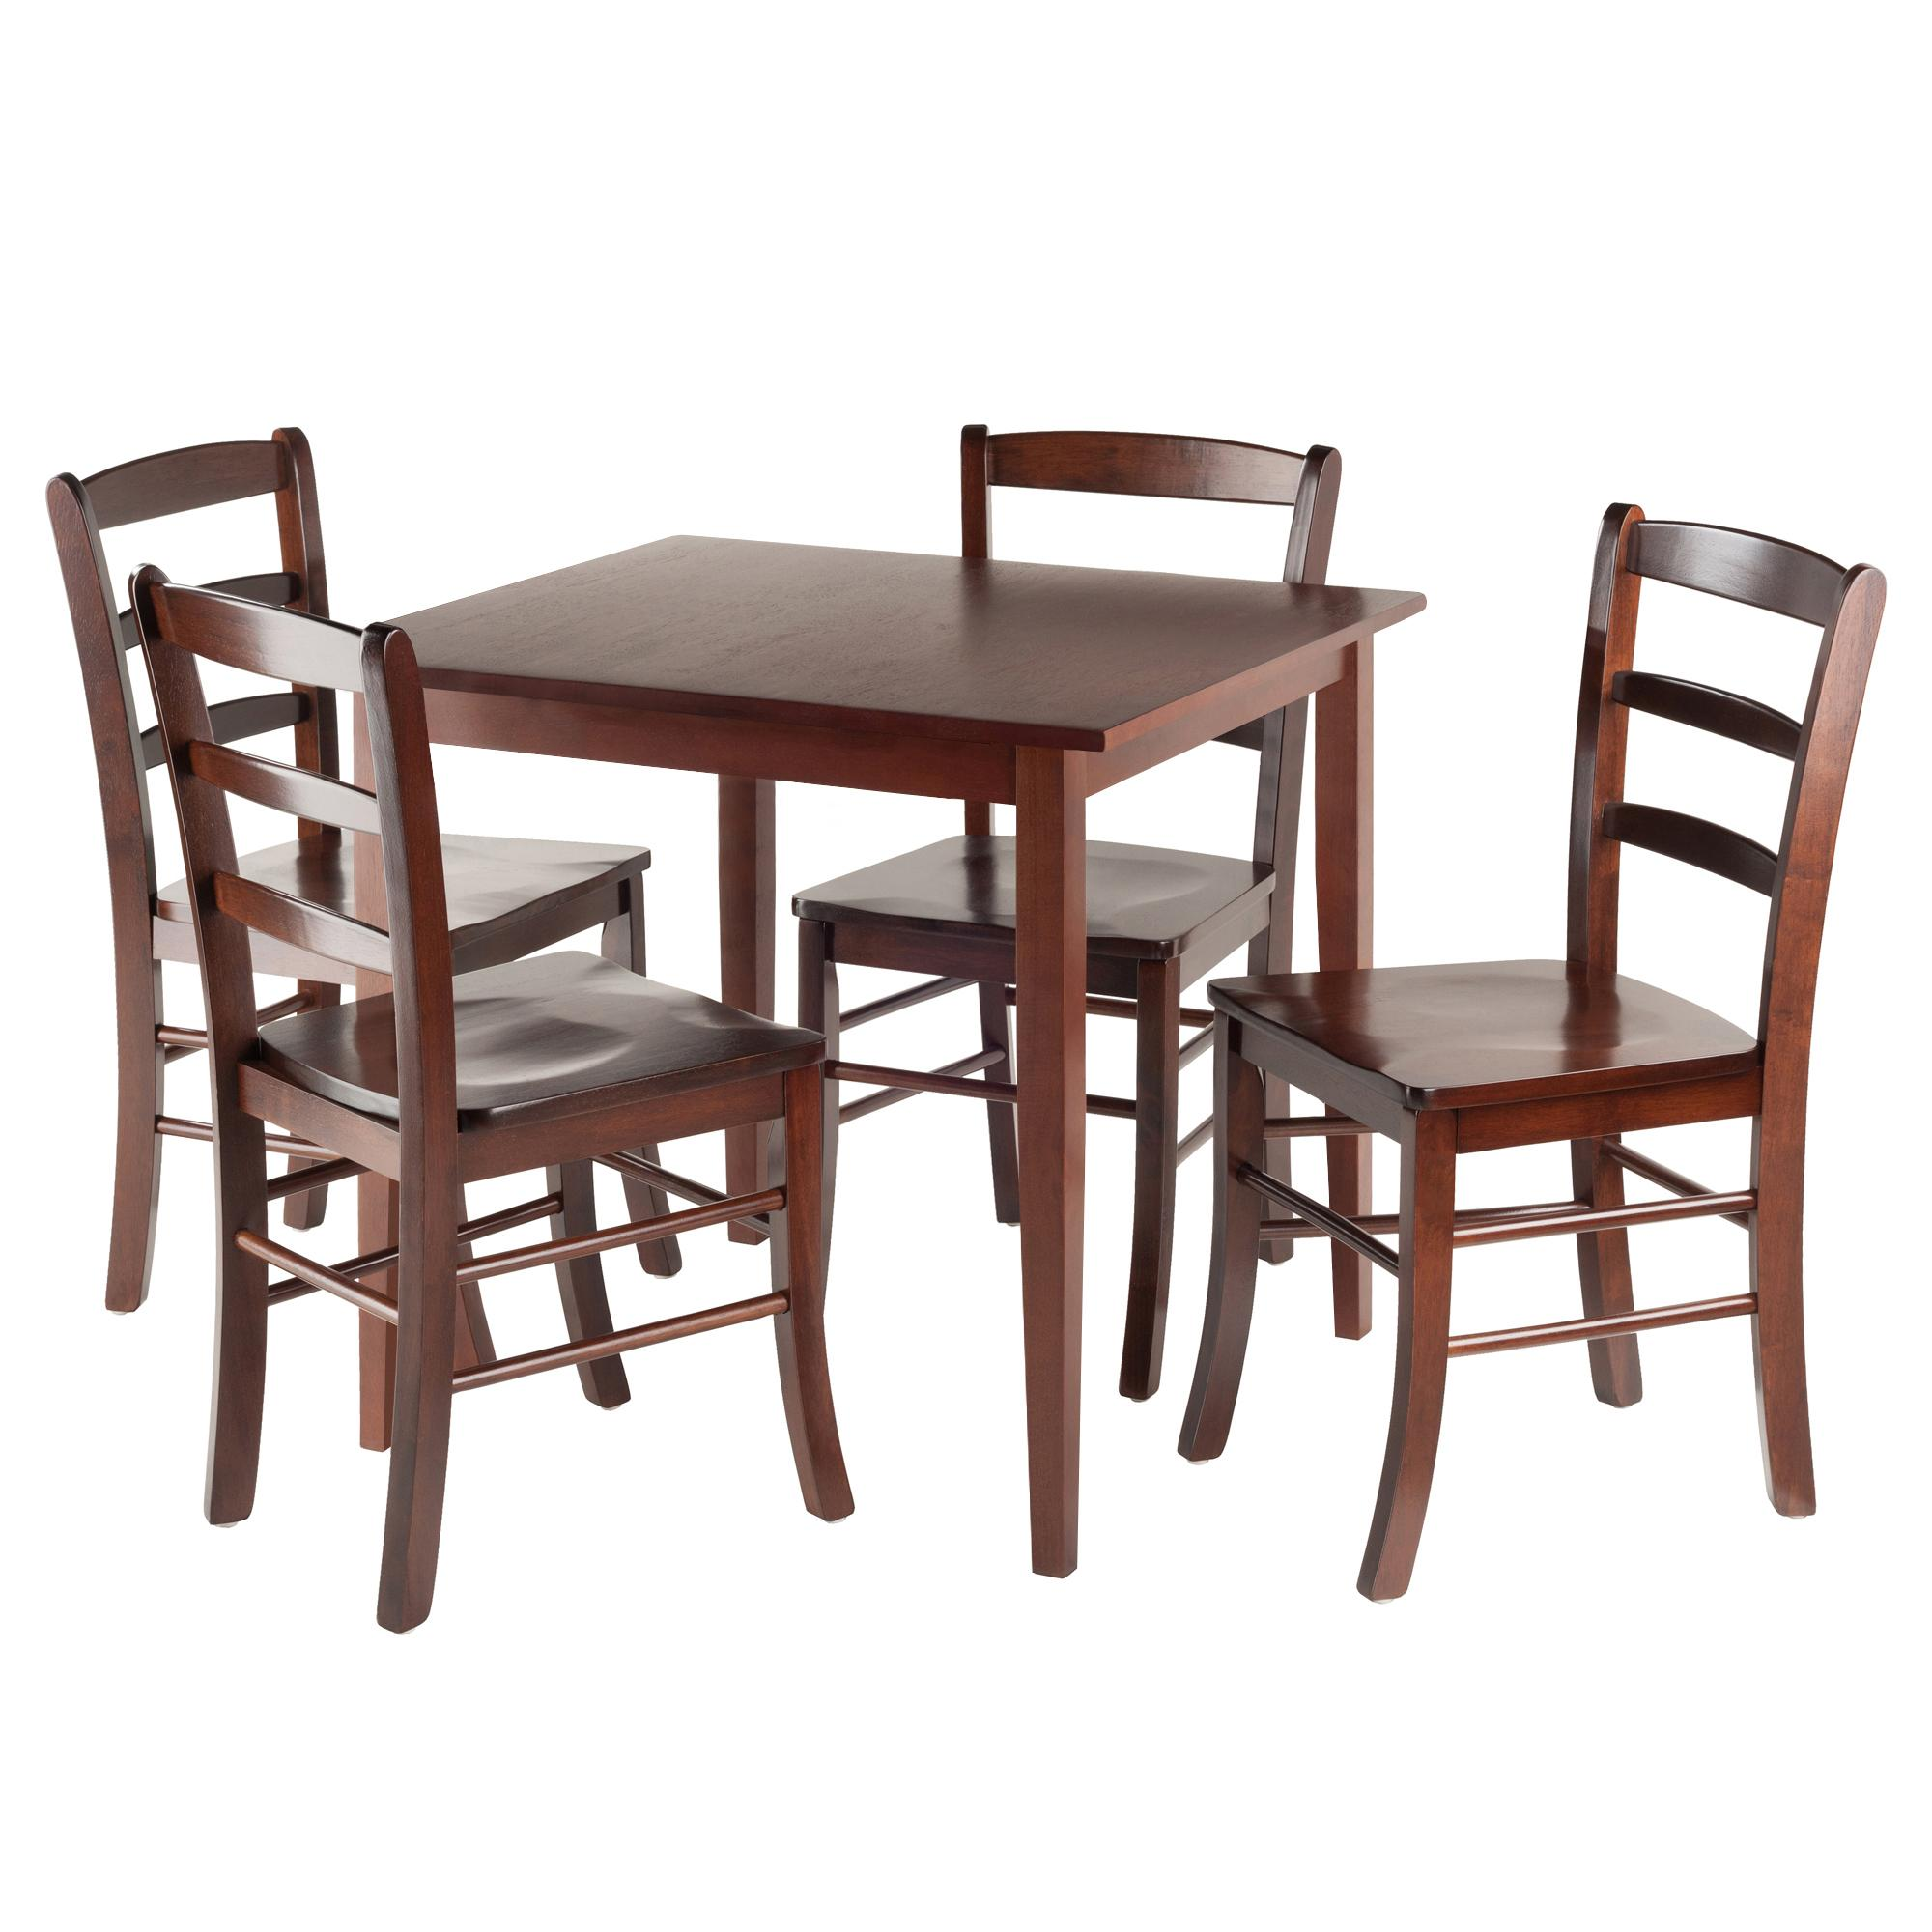 Square Dining Table With Bench: Winsome 94532 Groveland Square Dining Table